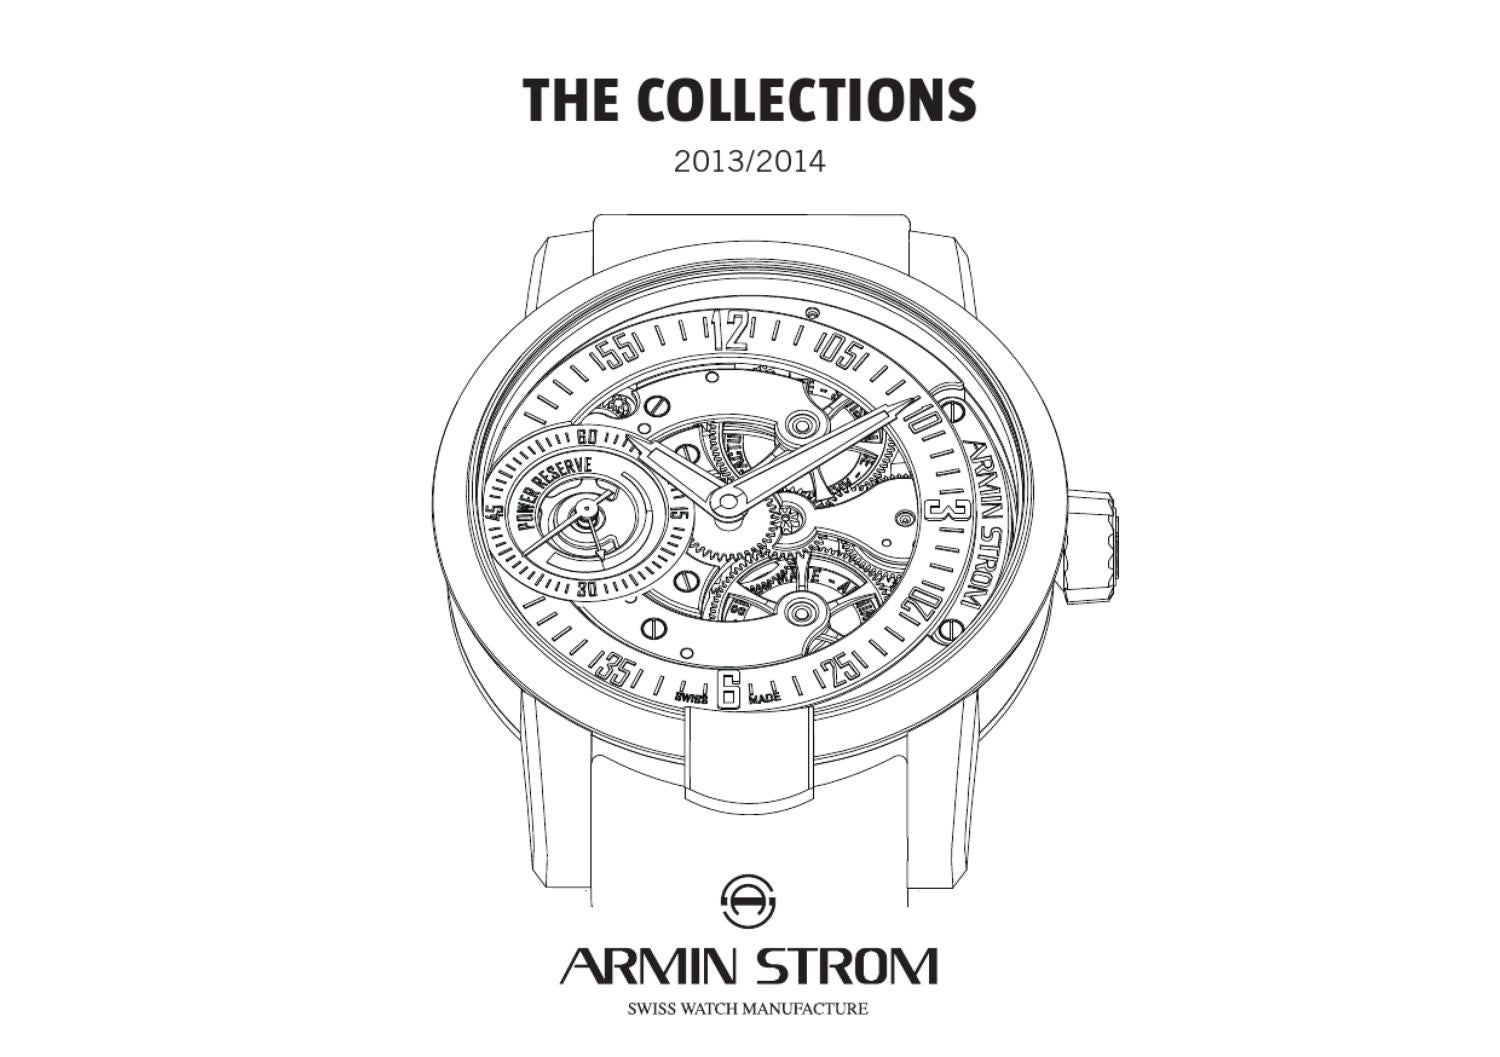 Armin Strom The Collections 2013/2014 by Armin Strom AG